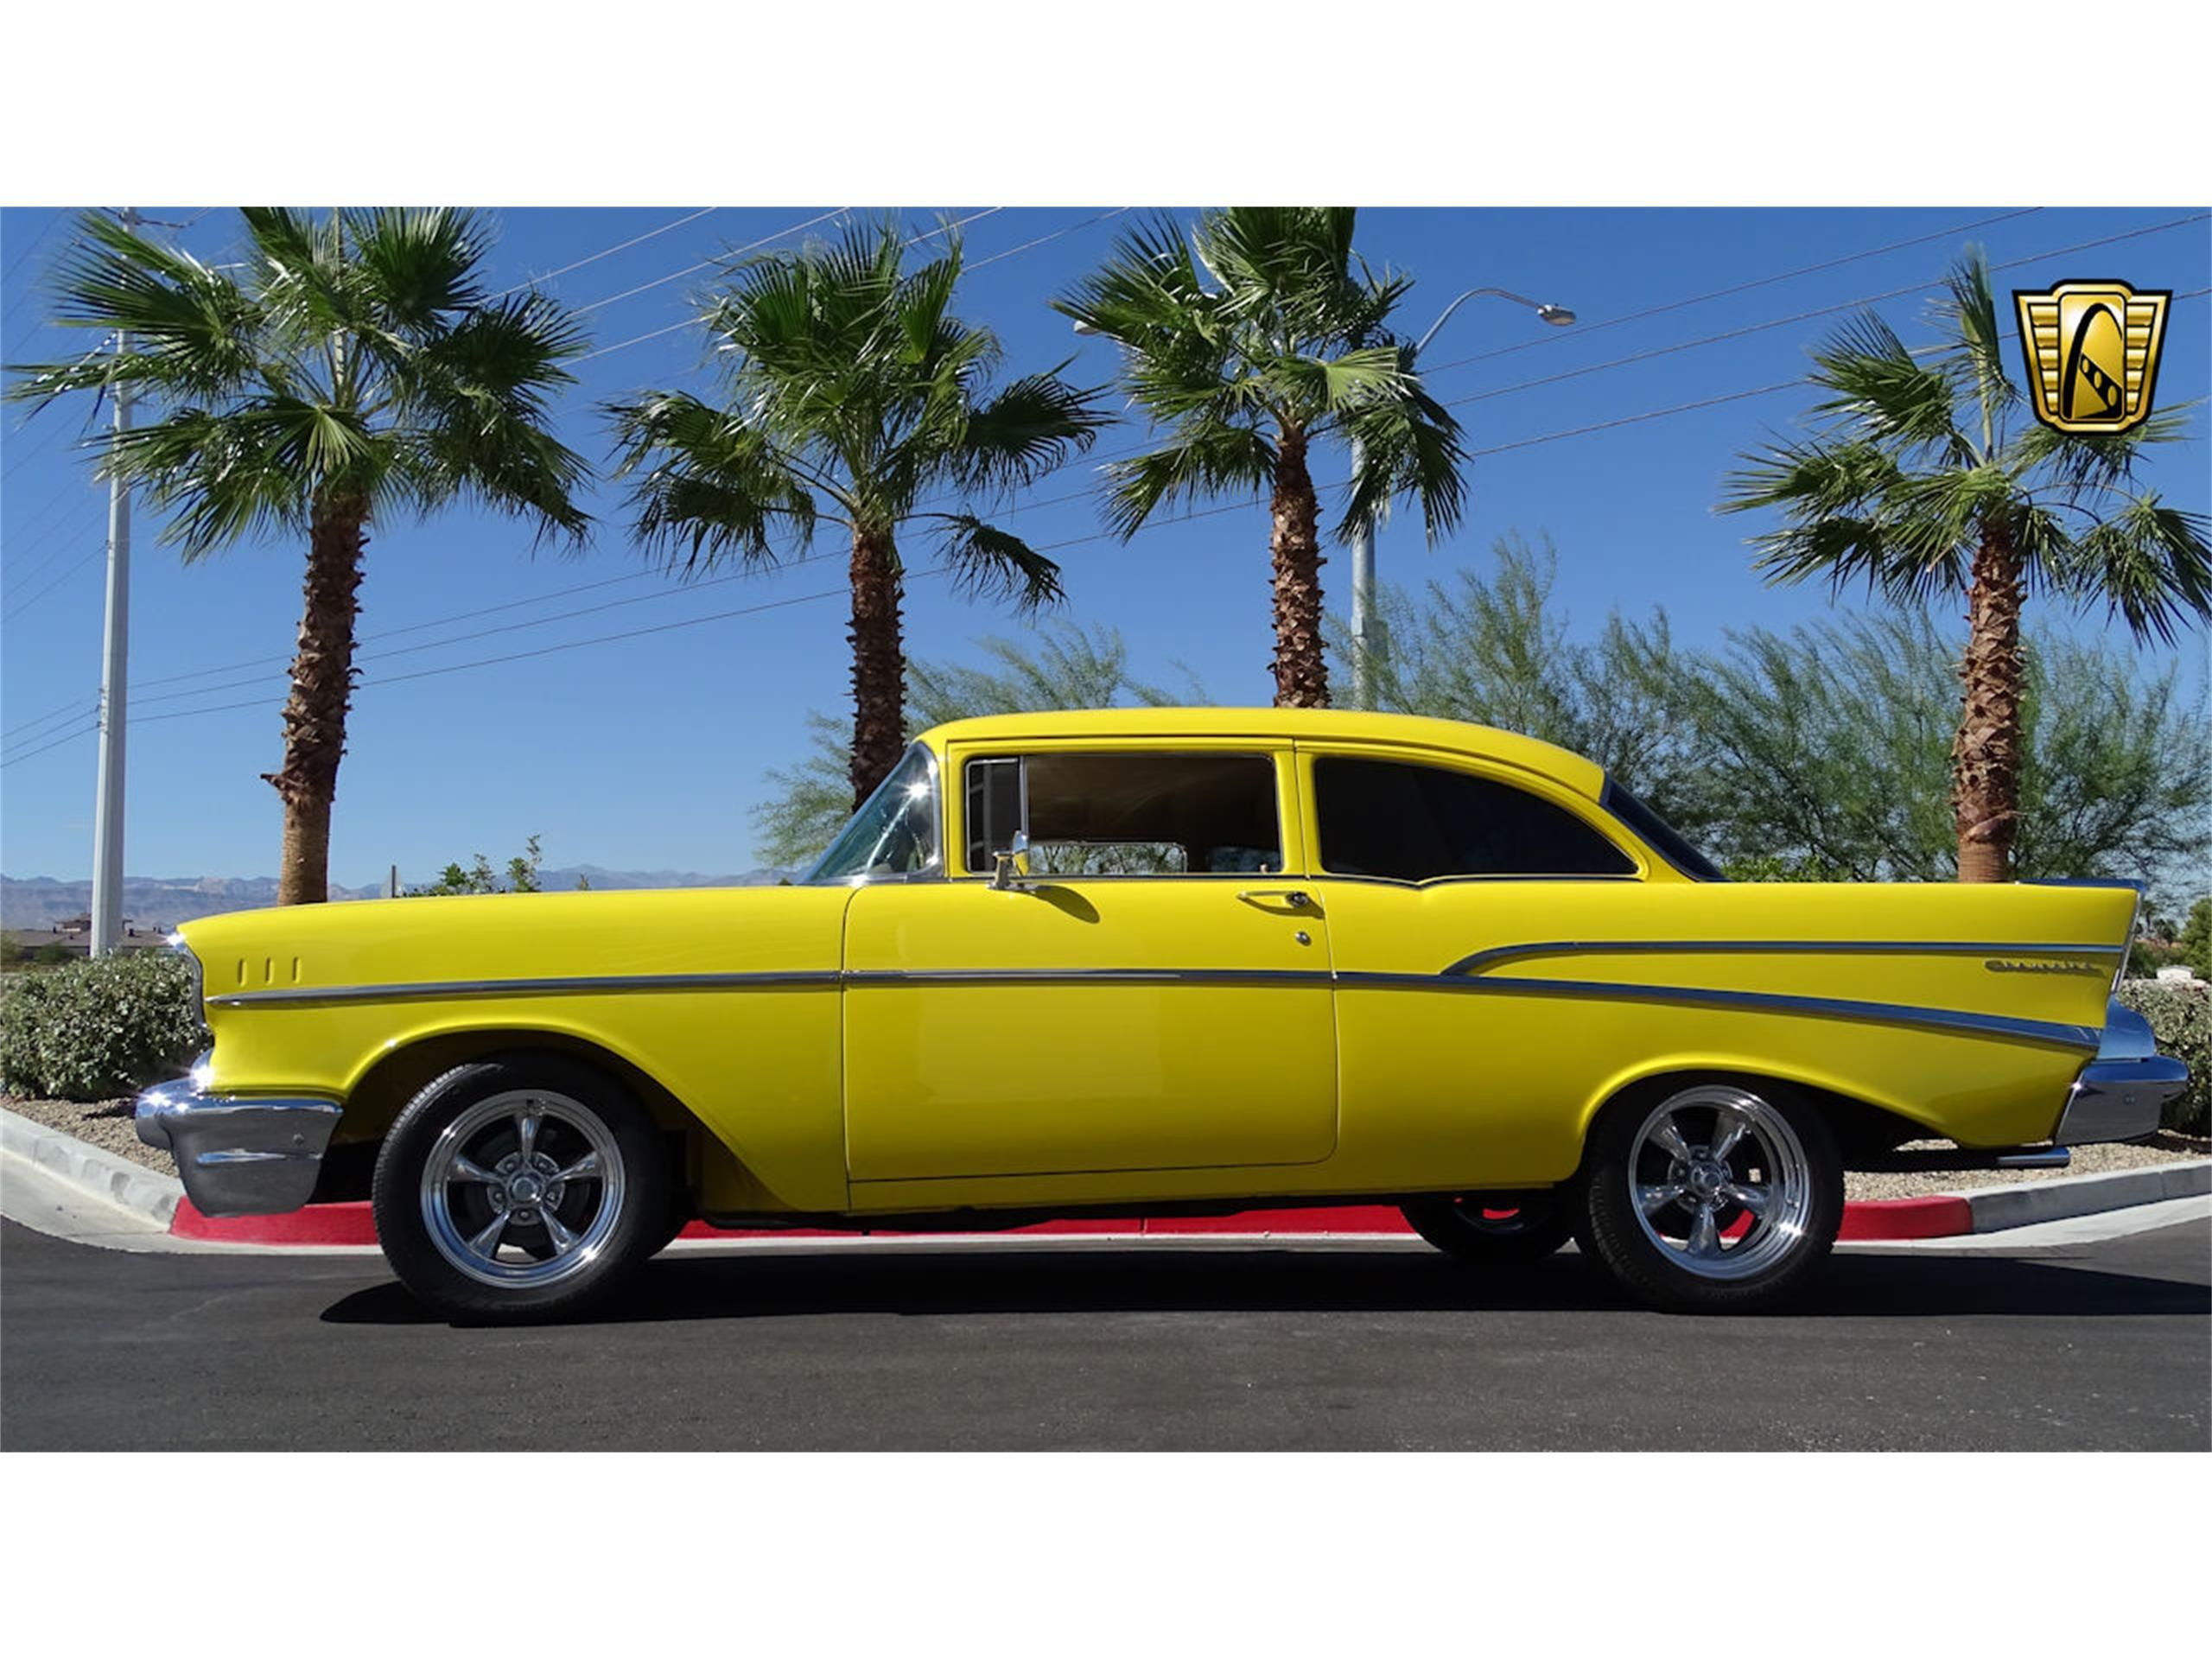 1957 Chevrolet 210 For Sale Listing Id Cc 1152246 Classiccars Com Driveyourdream Classicchevy Chevrolet21 1957 Chevrolet Chevy Muscle Cars Chevrolet